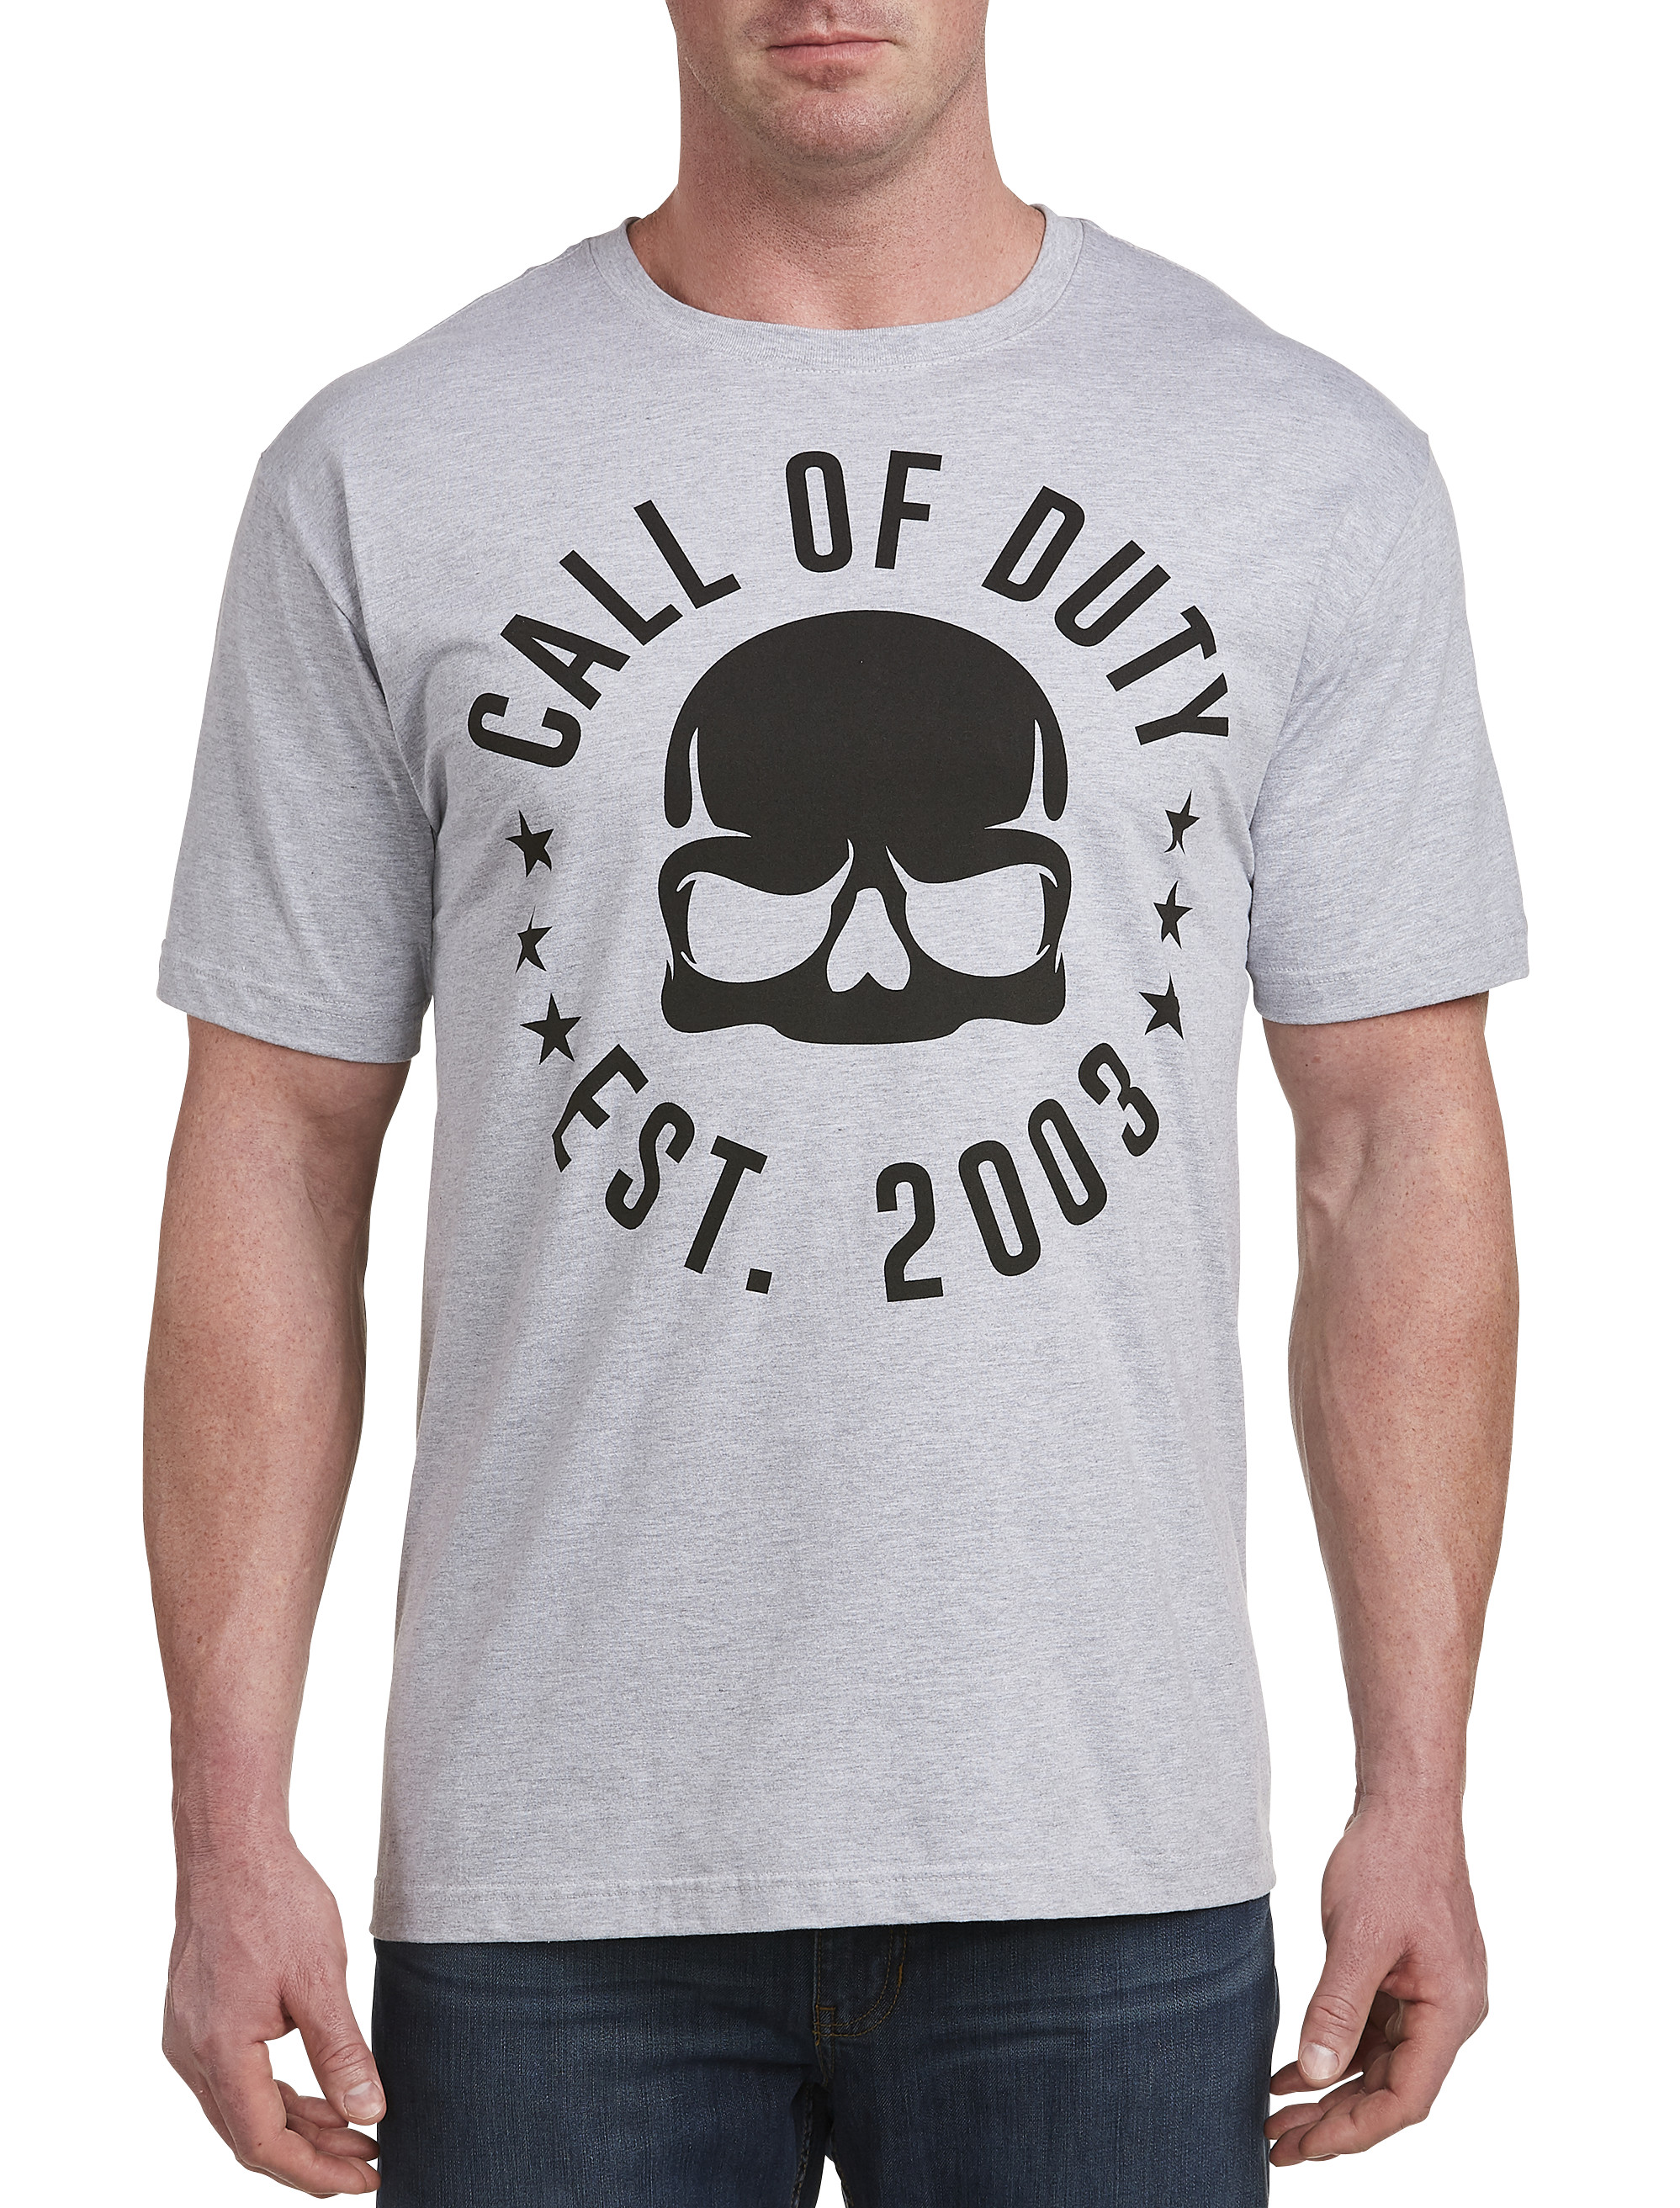 Call of Duty Graphic Tee | Tuggl